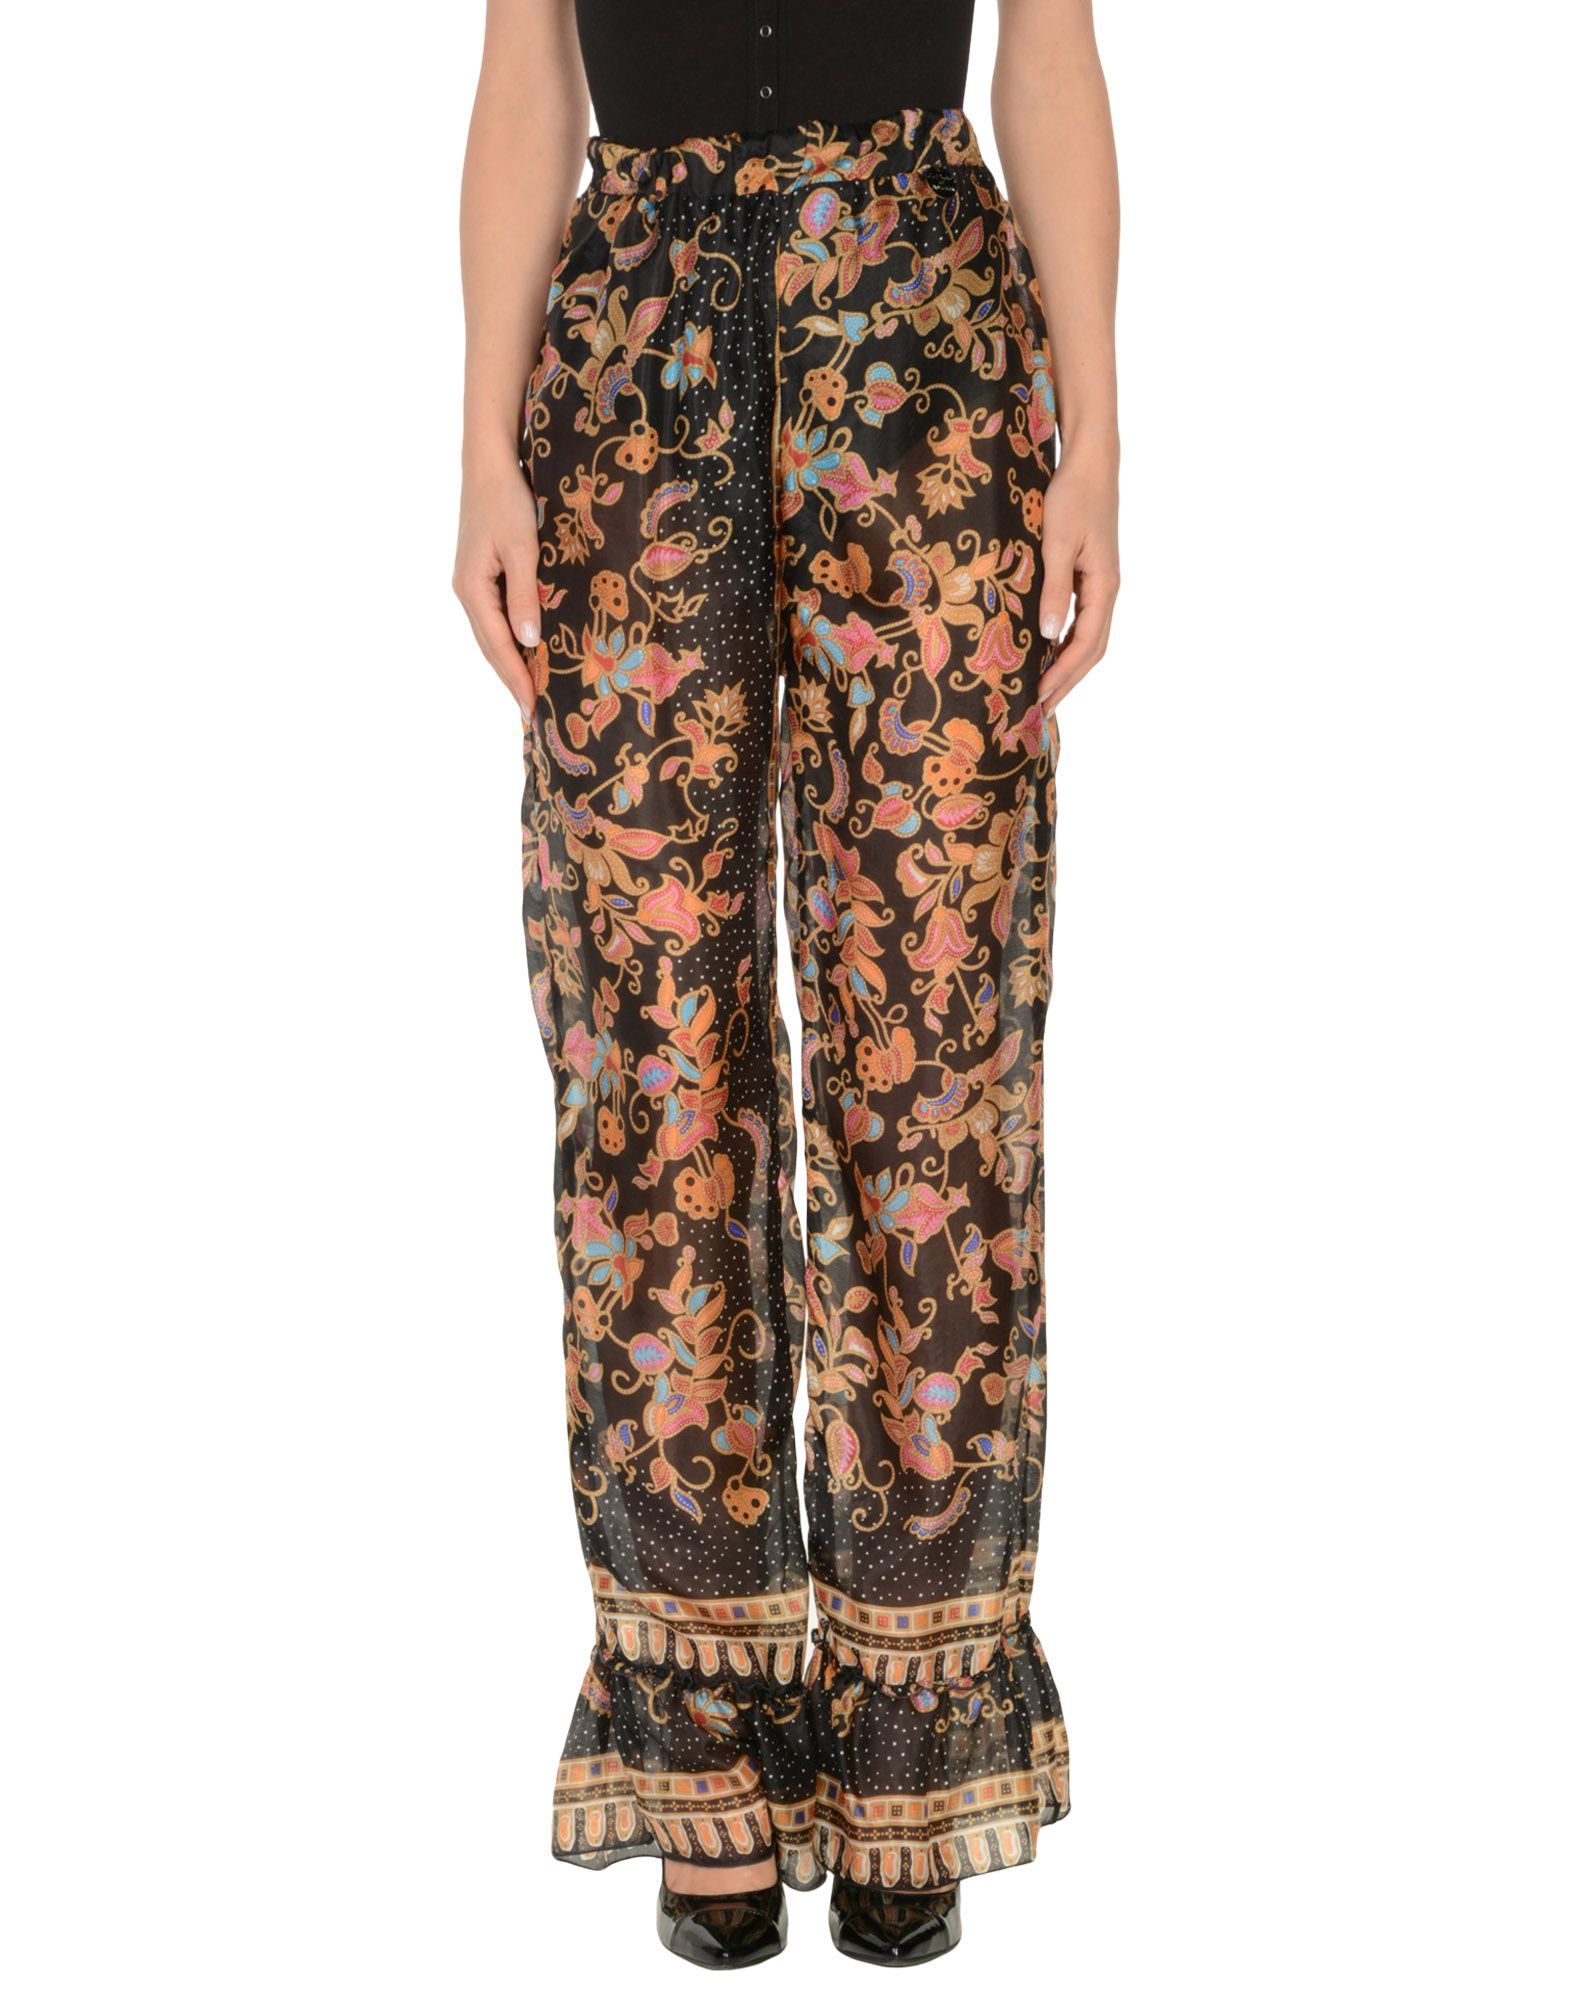 AMUCK Casual Pants in Black